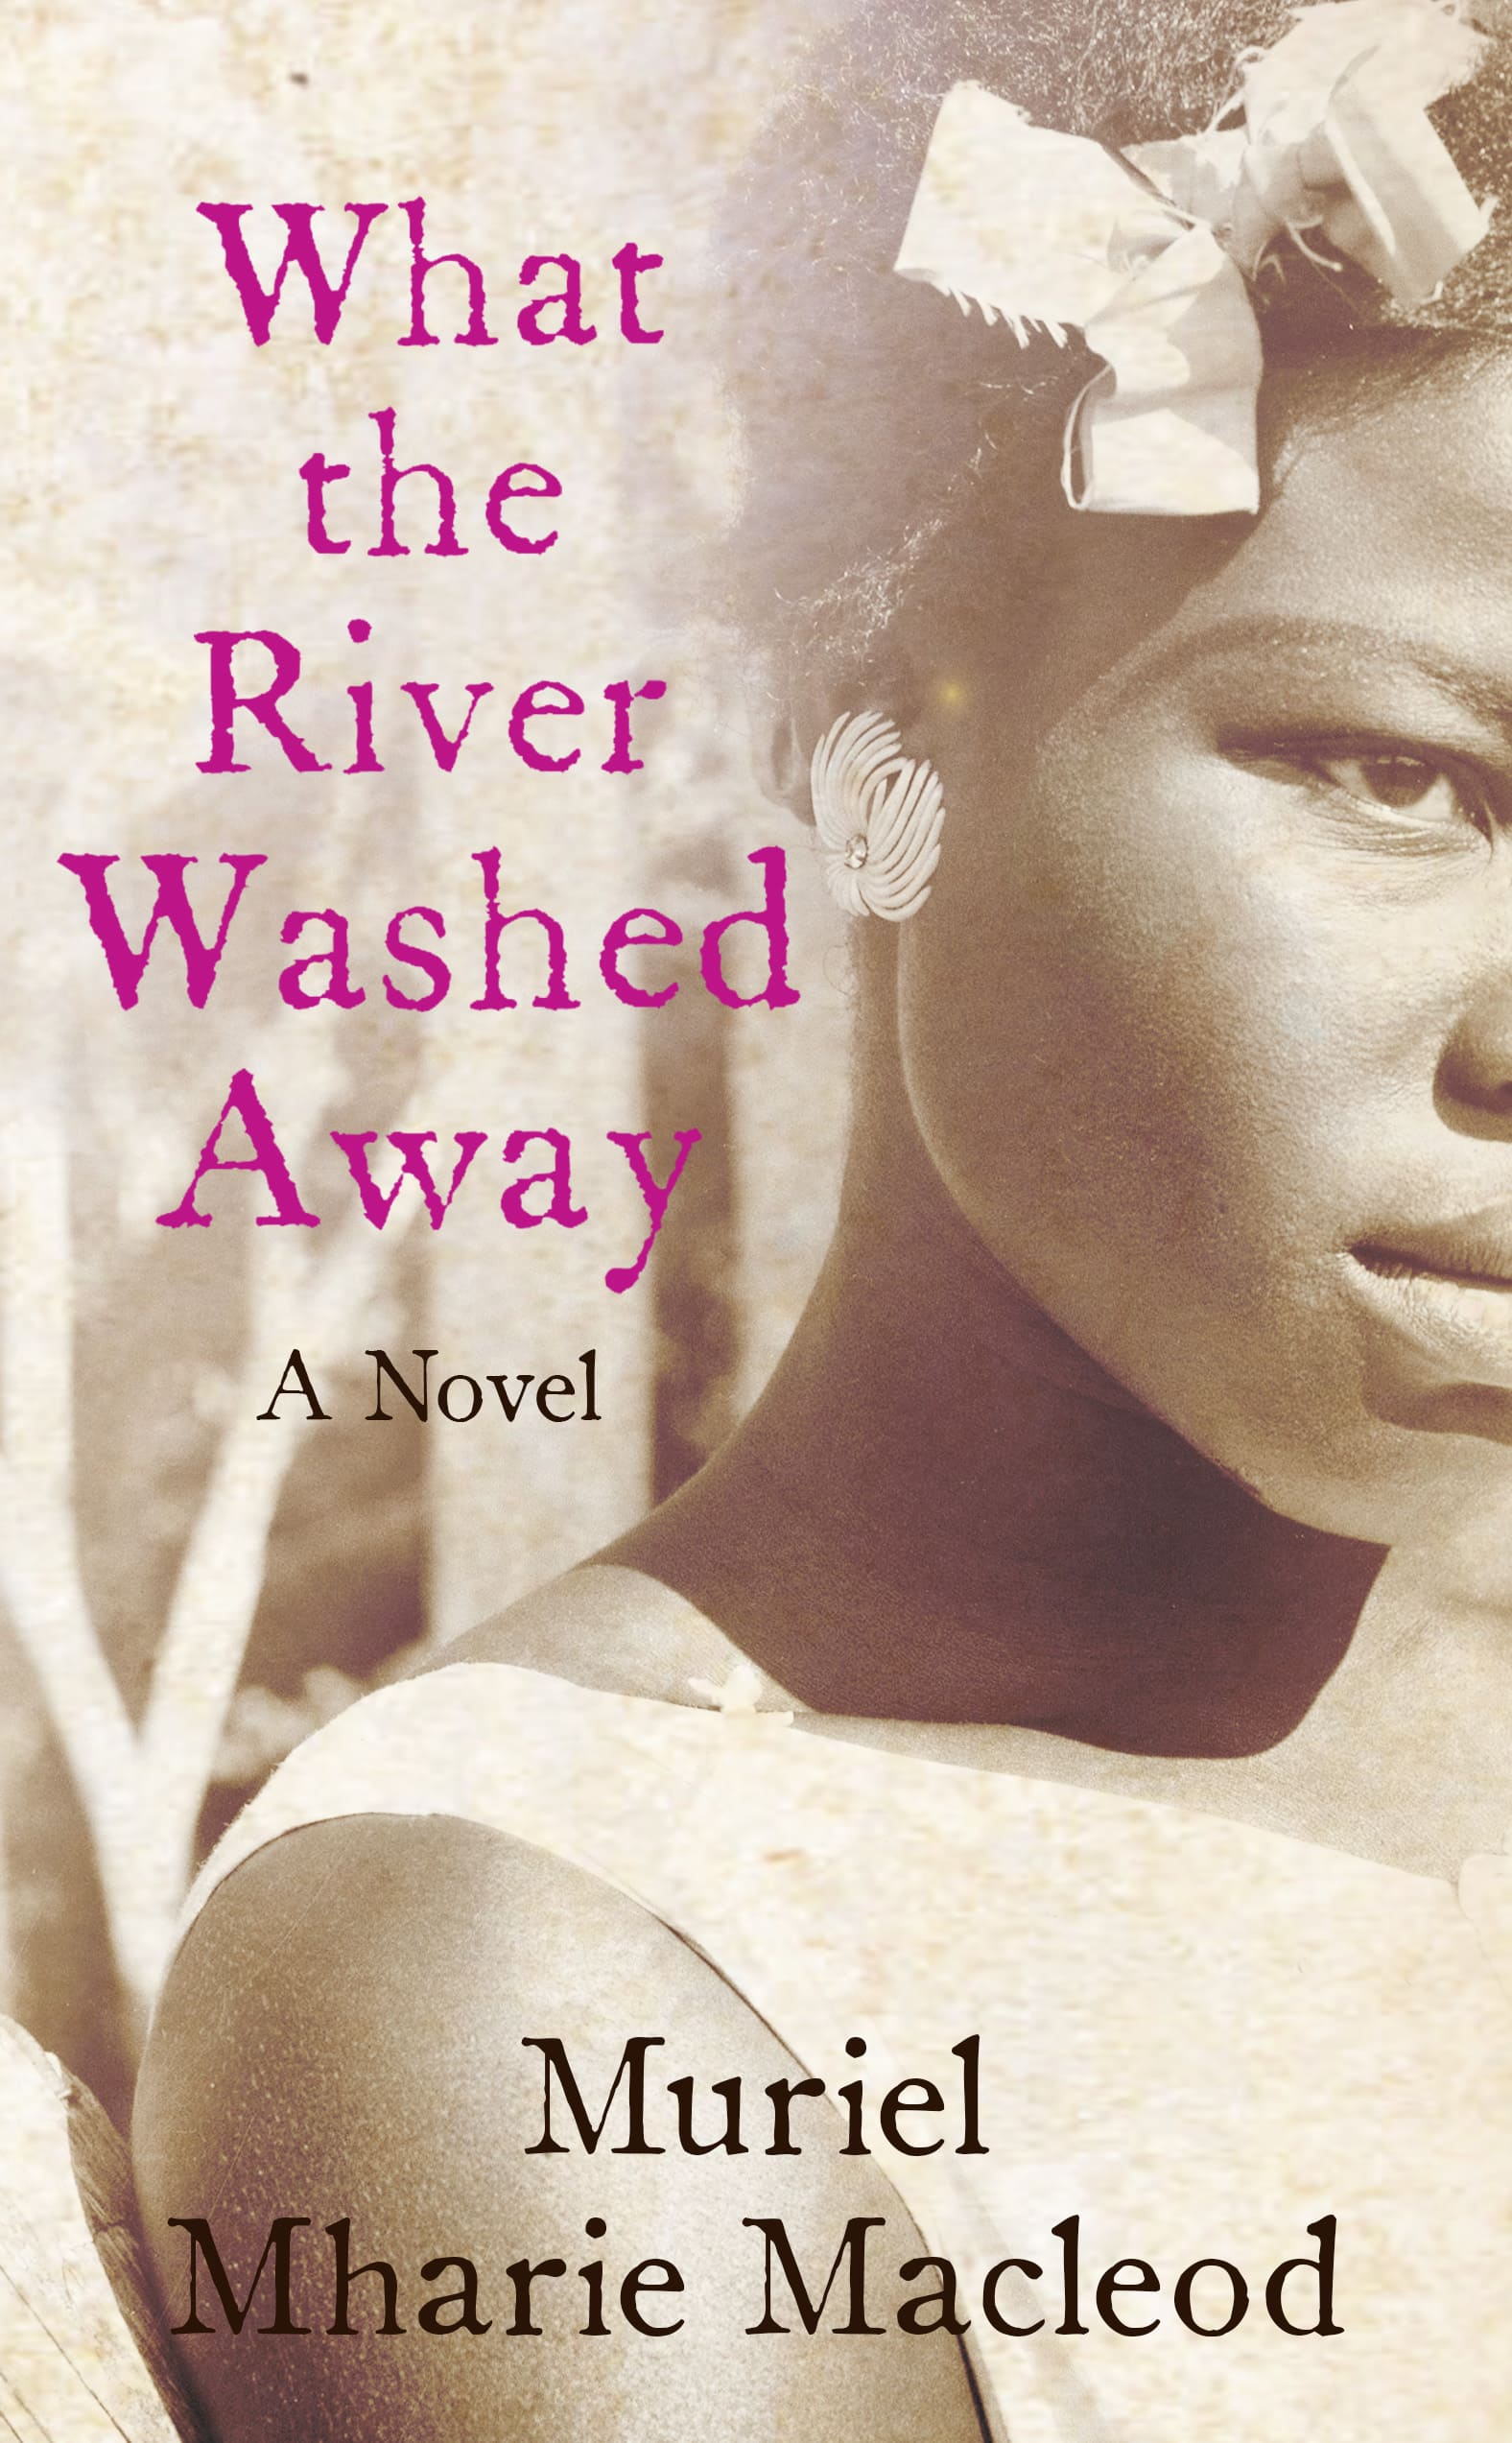 What the River Washed Away by Muriel Macleod